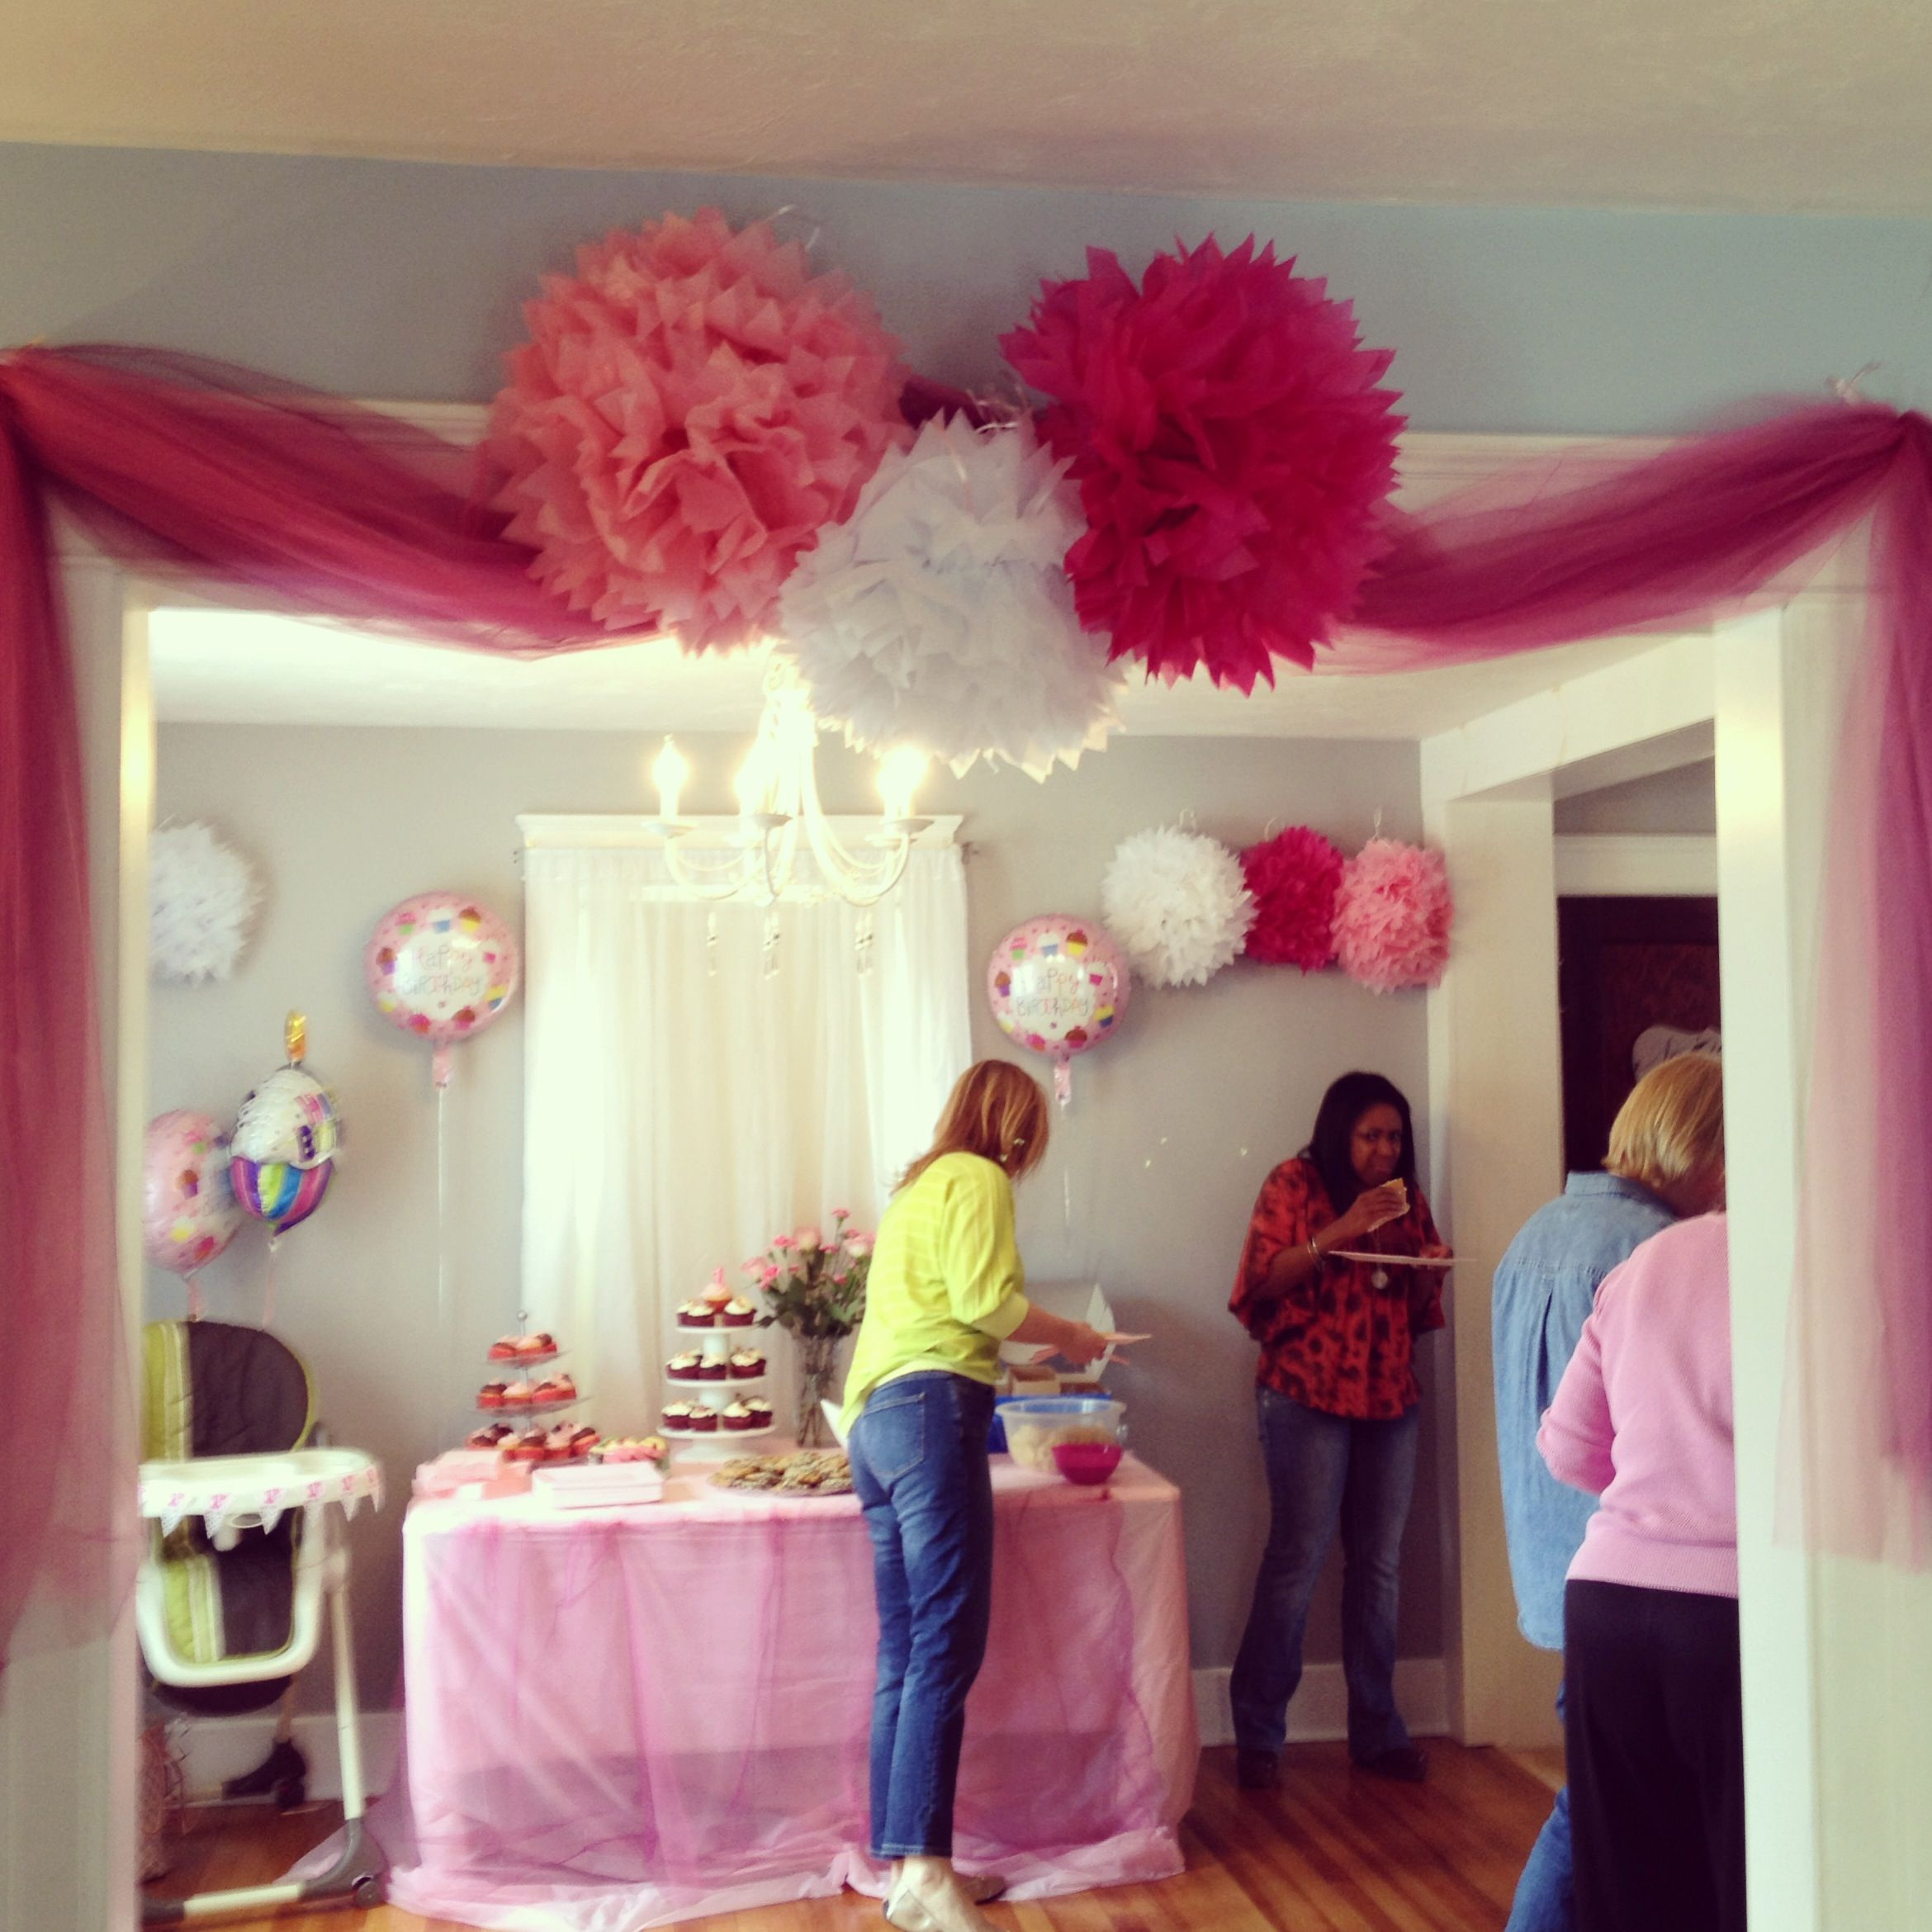 Bridgette 39 s 1st birthday party decorations pink tutu for 1st birthday party decoration ideas at home